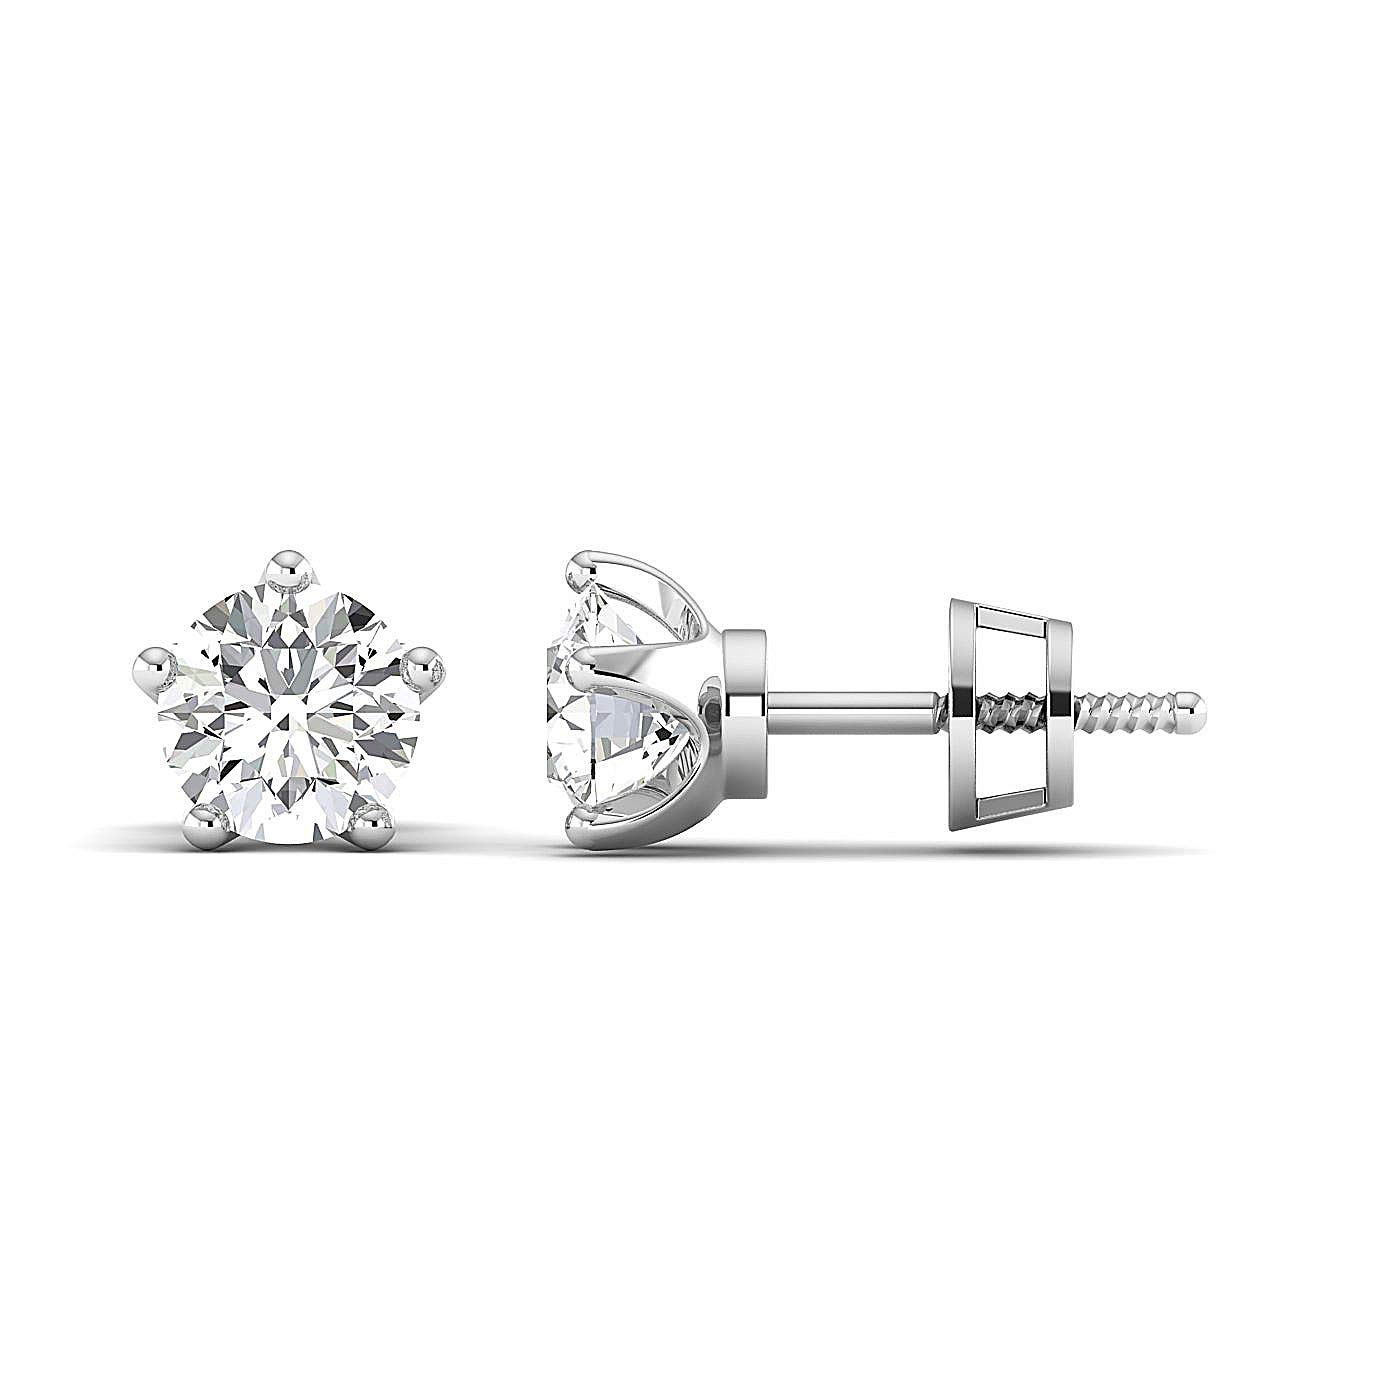 Stud Earrings for Women perfect Jewelry Gifts for Women Teen Girls /Pure Gold // 925 Sterling Silver Round Brilliant Earring Studs 0.3 to 4 Carat Moissanite Stud Earrings GH//VVS